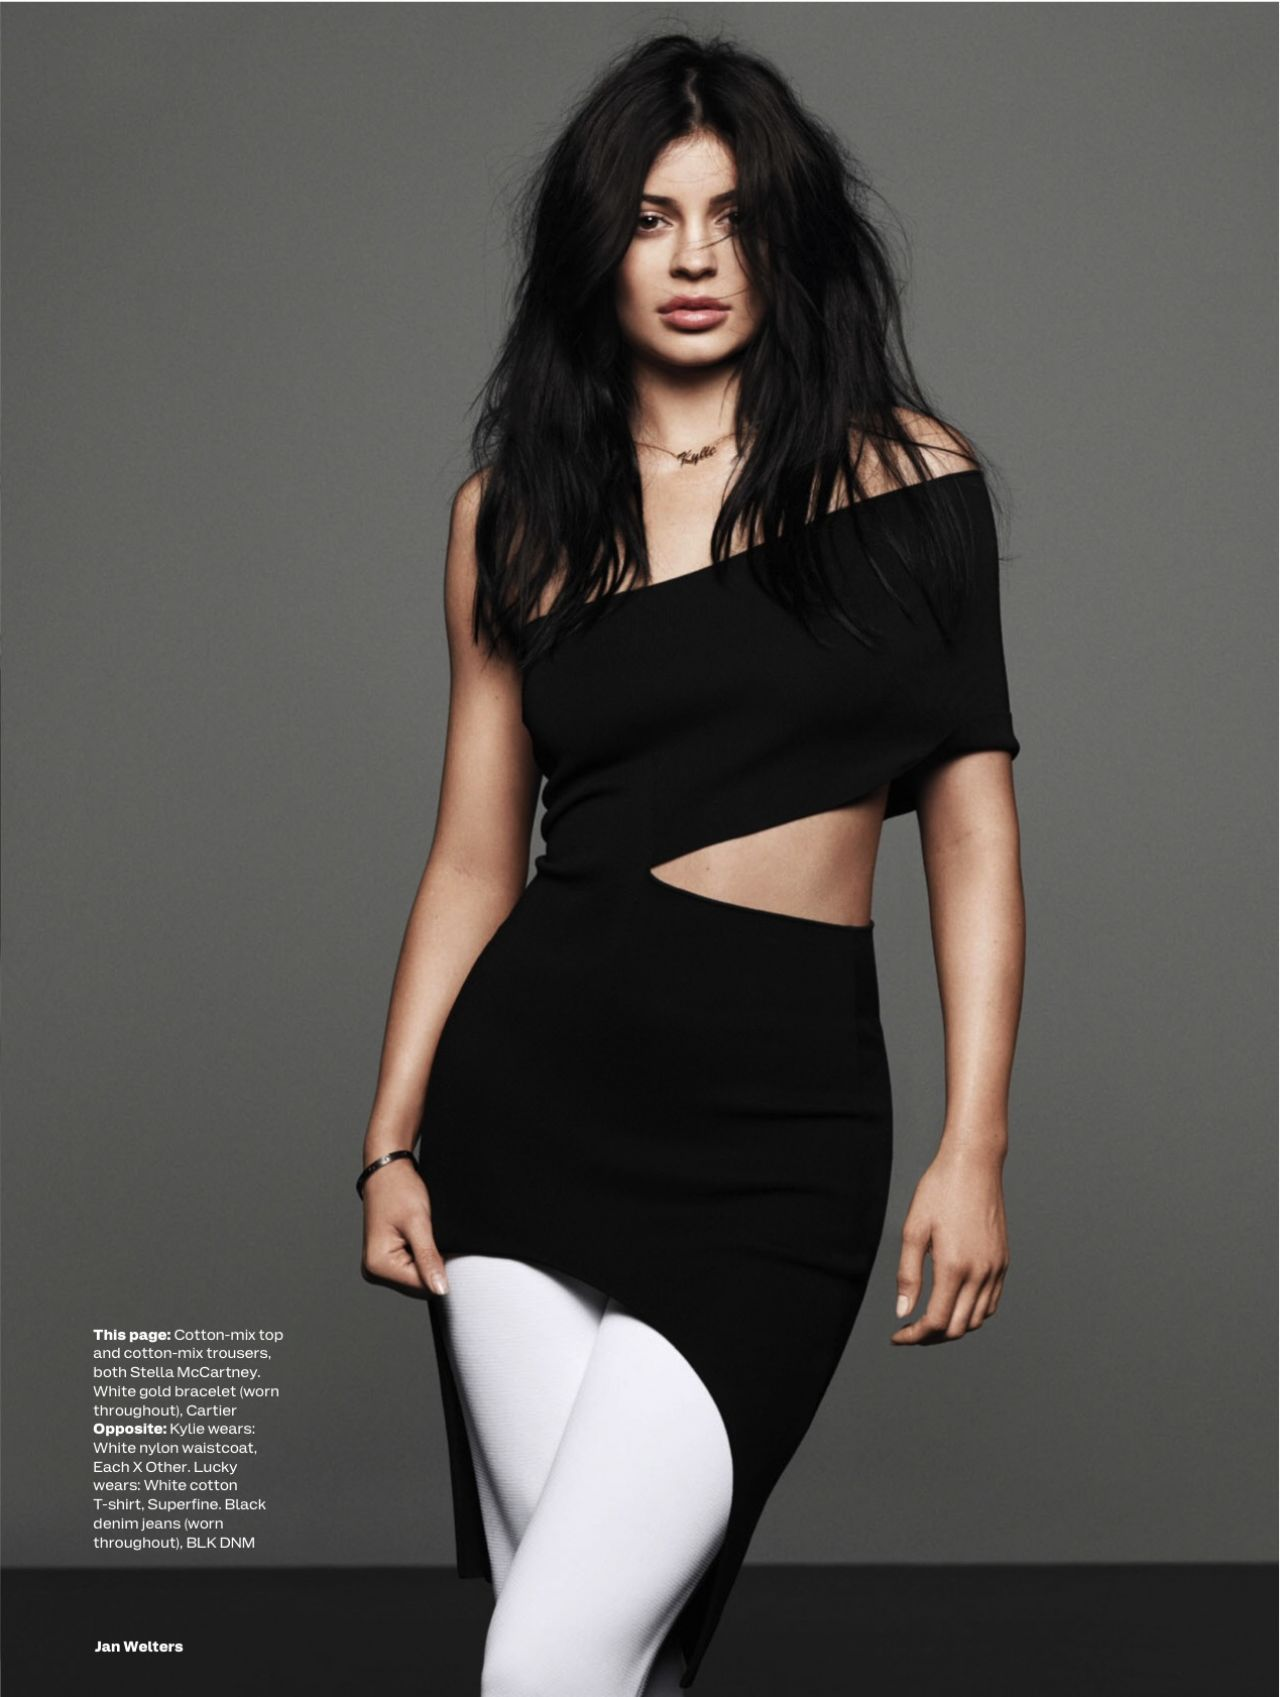 kylie jenner - photo #16